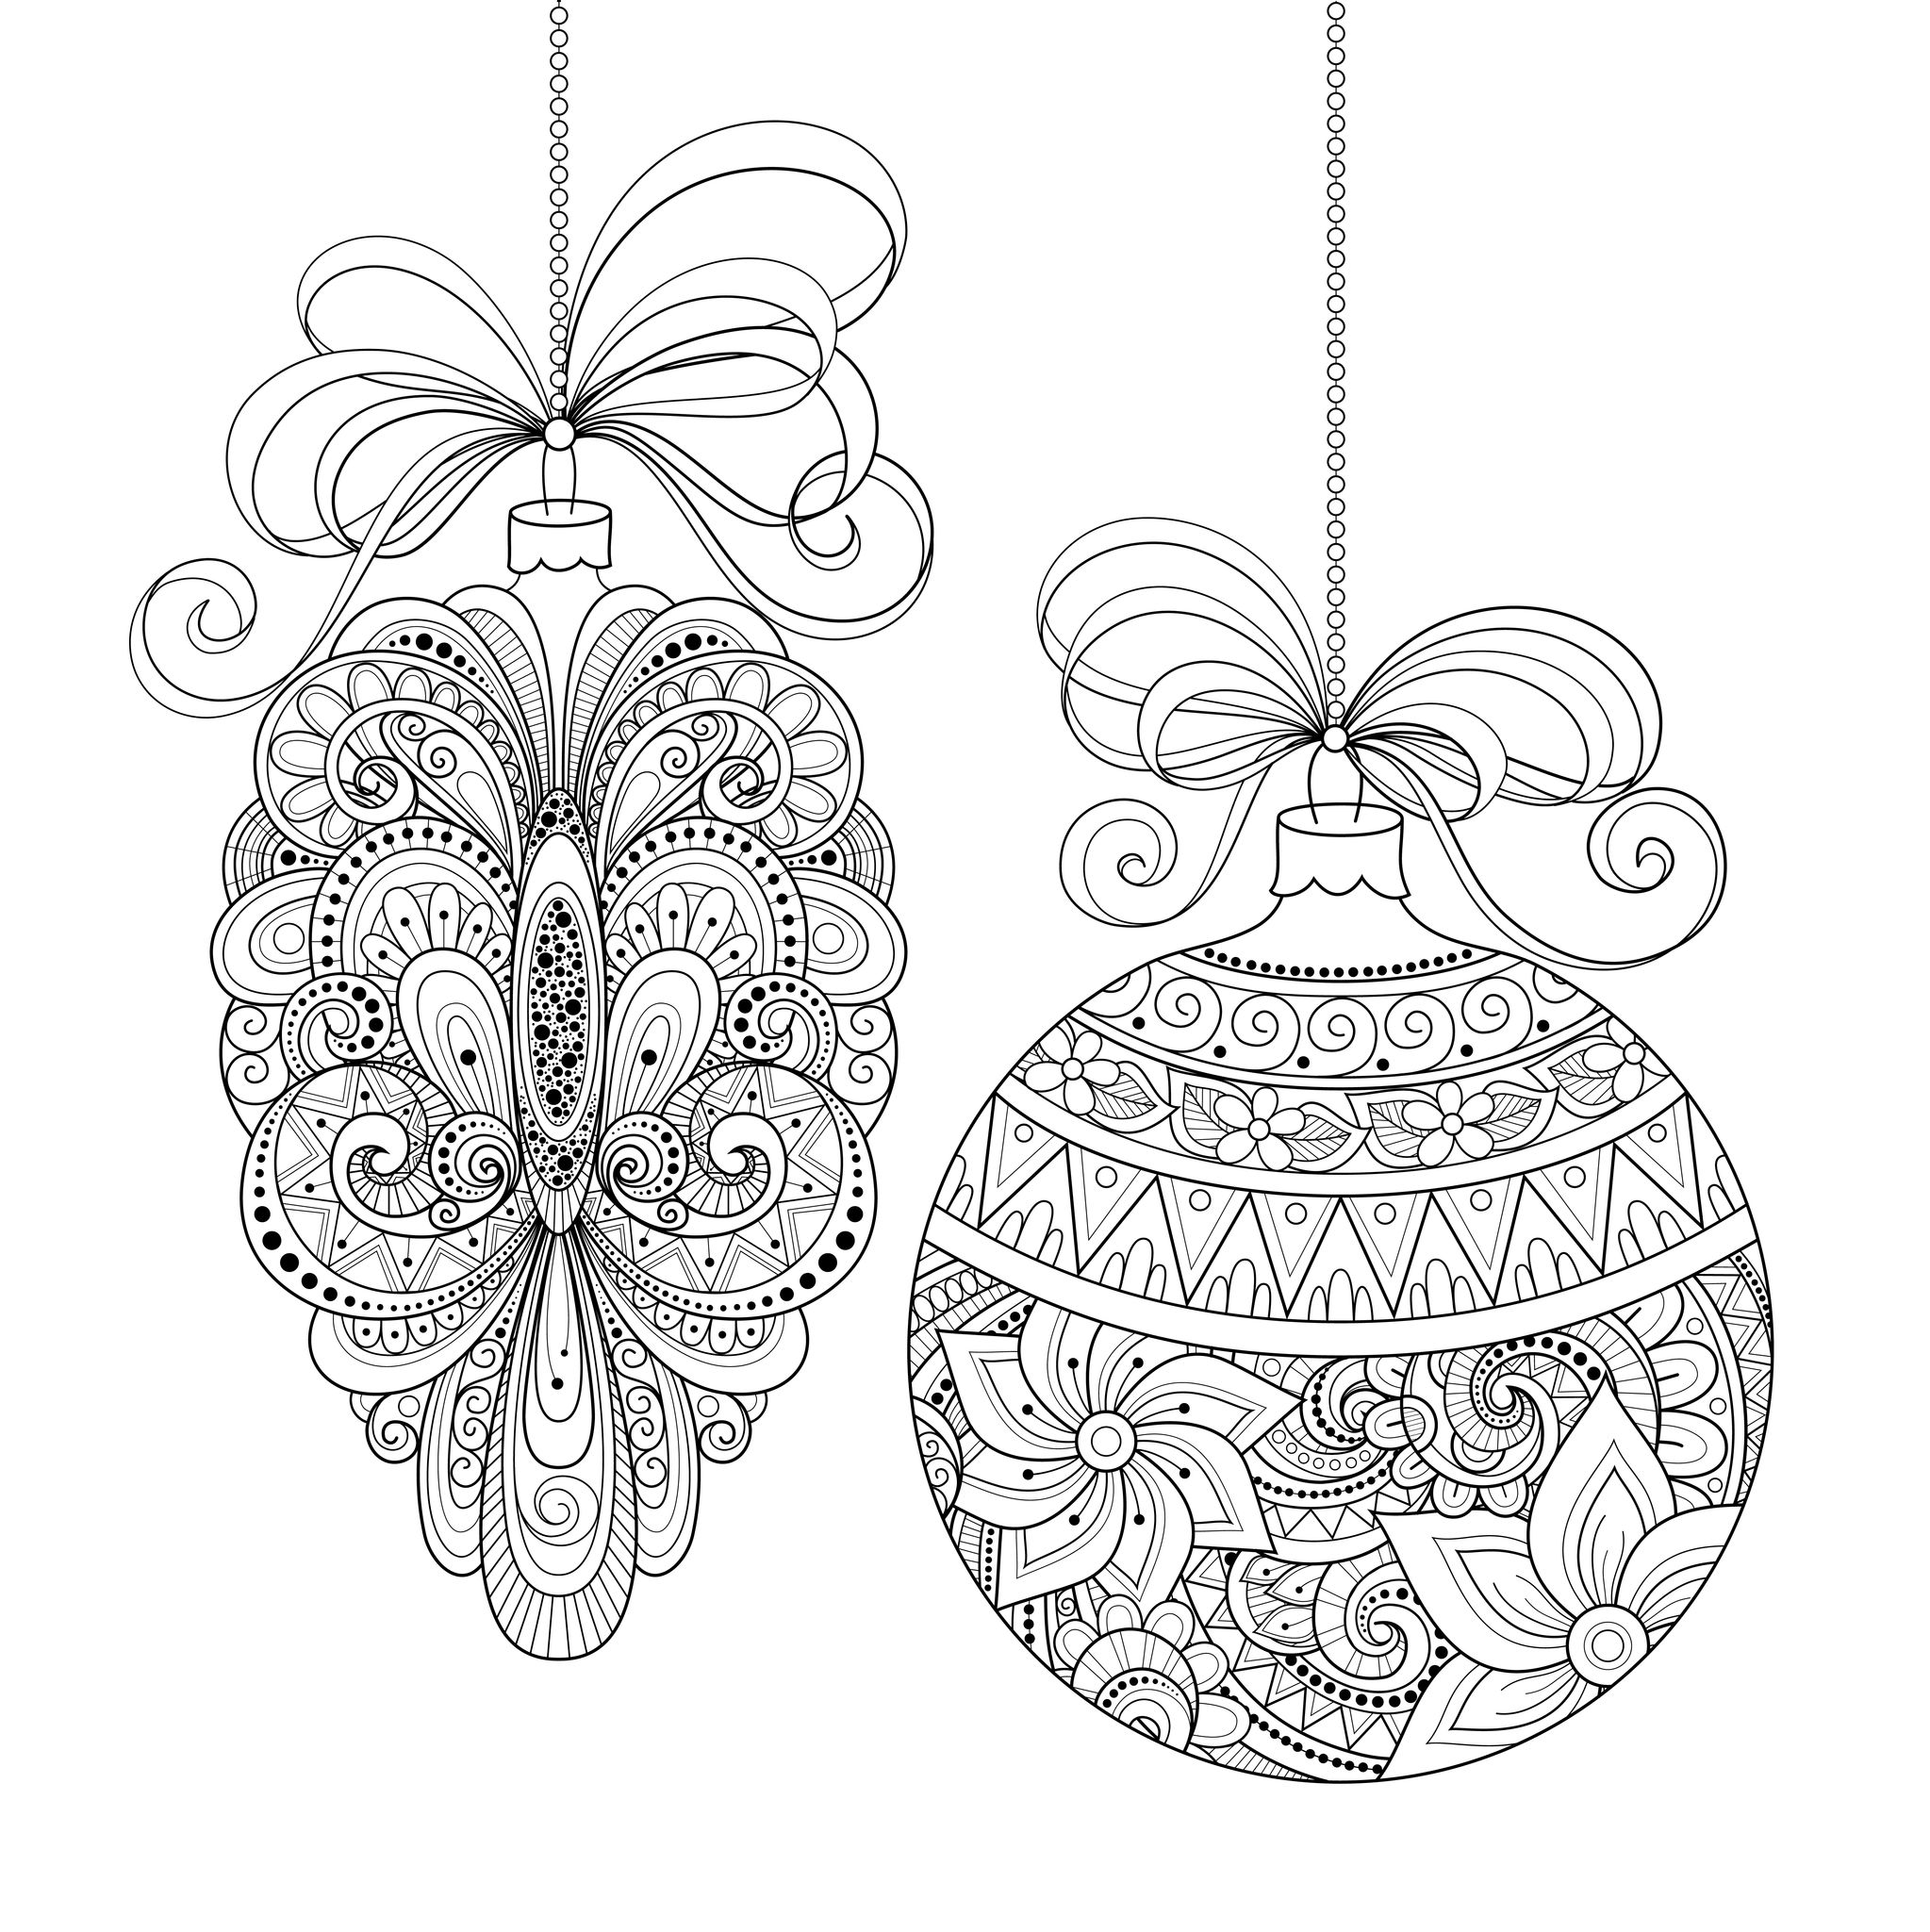 Difficult Christmas Coloring Pages For Adults With Best Kids